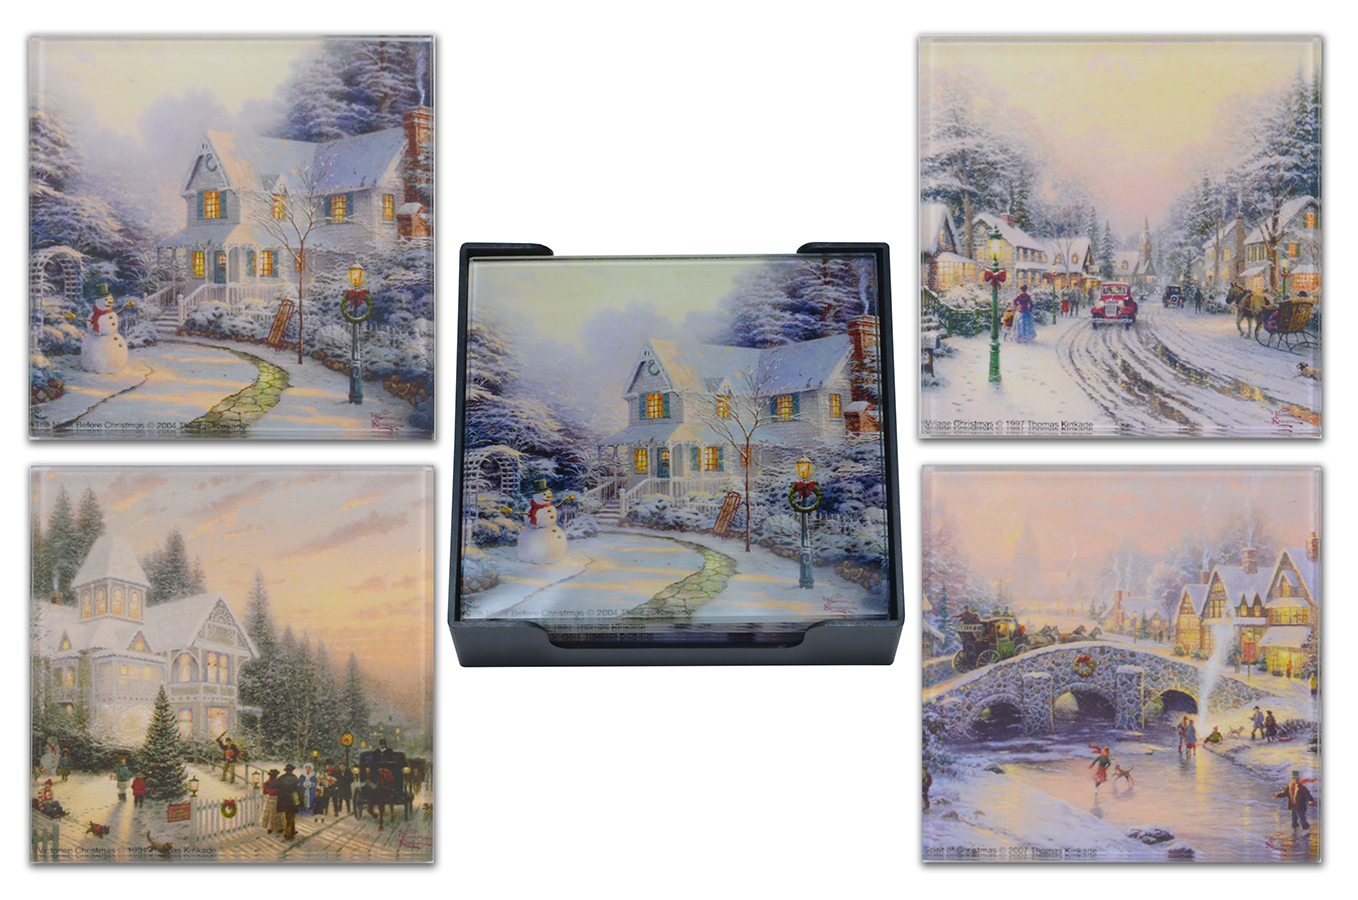 Thomas Kinkade Winter Scenes Glass Coaster Set of 4